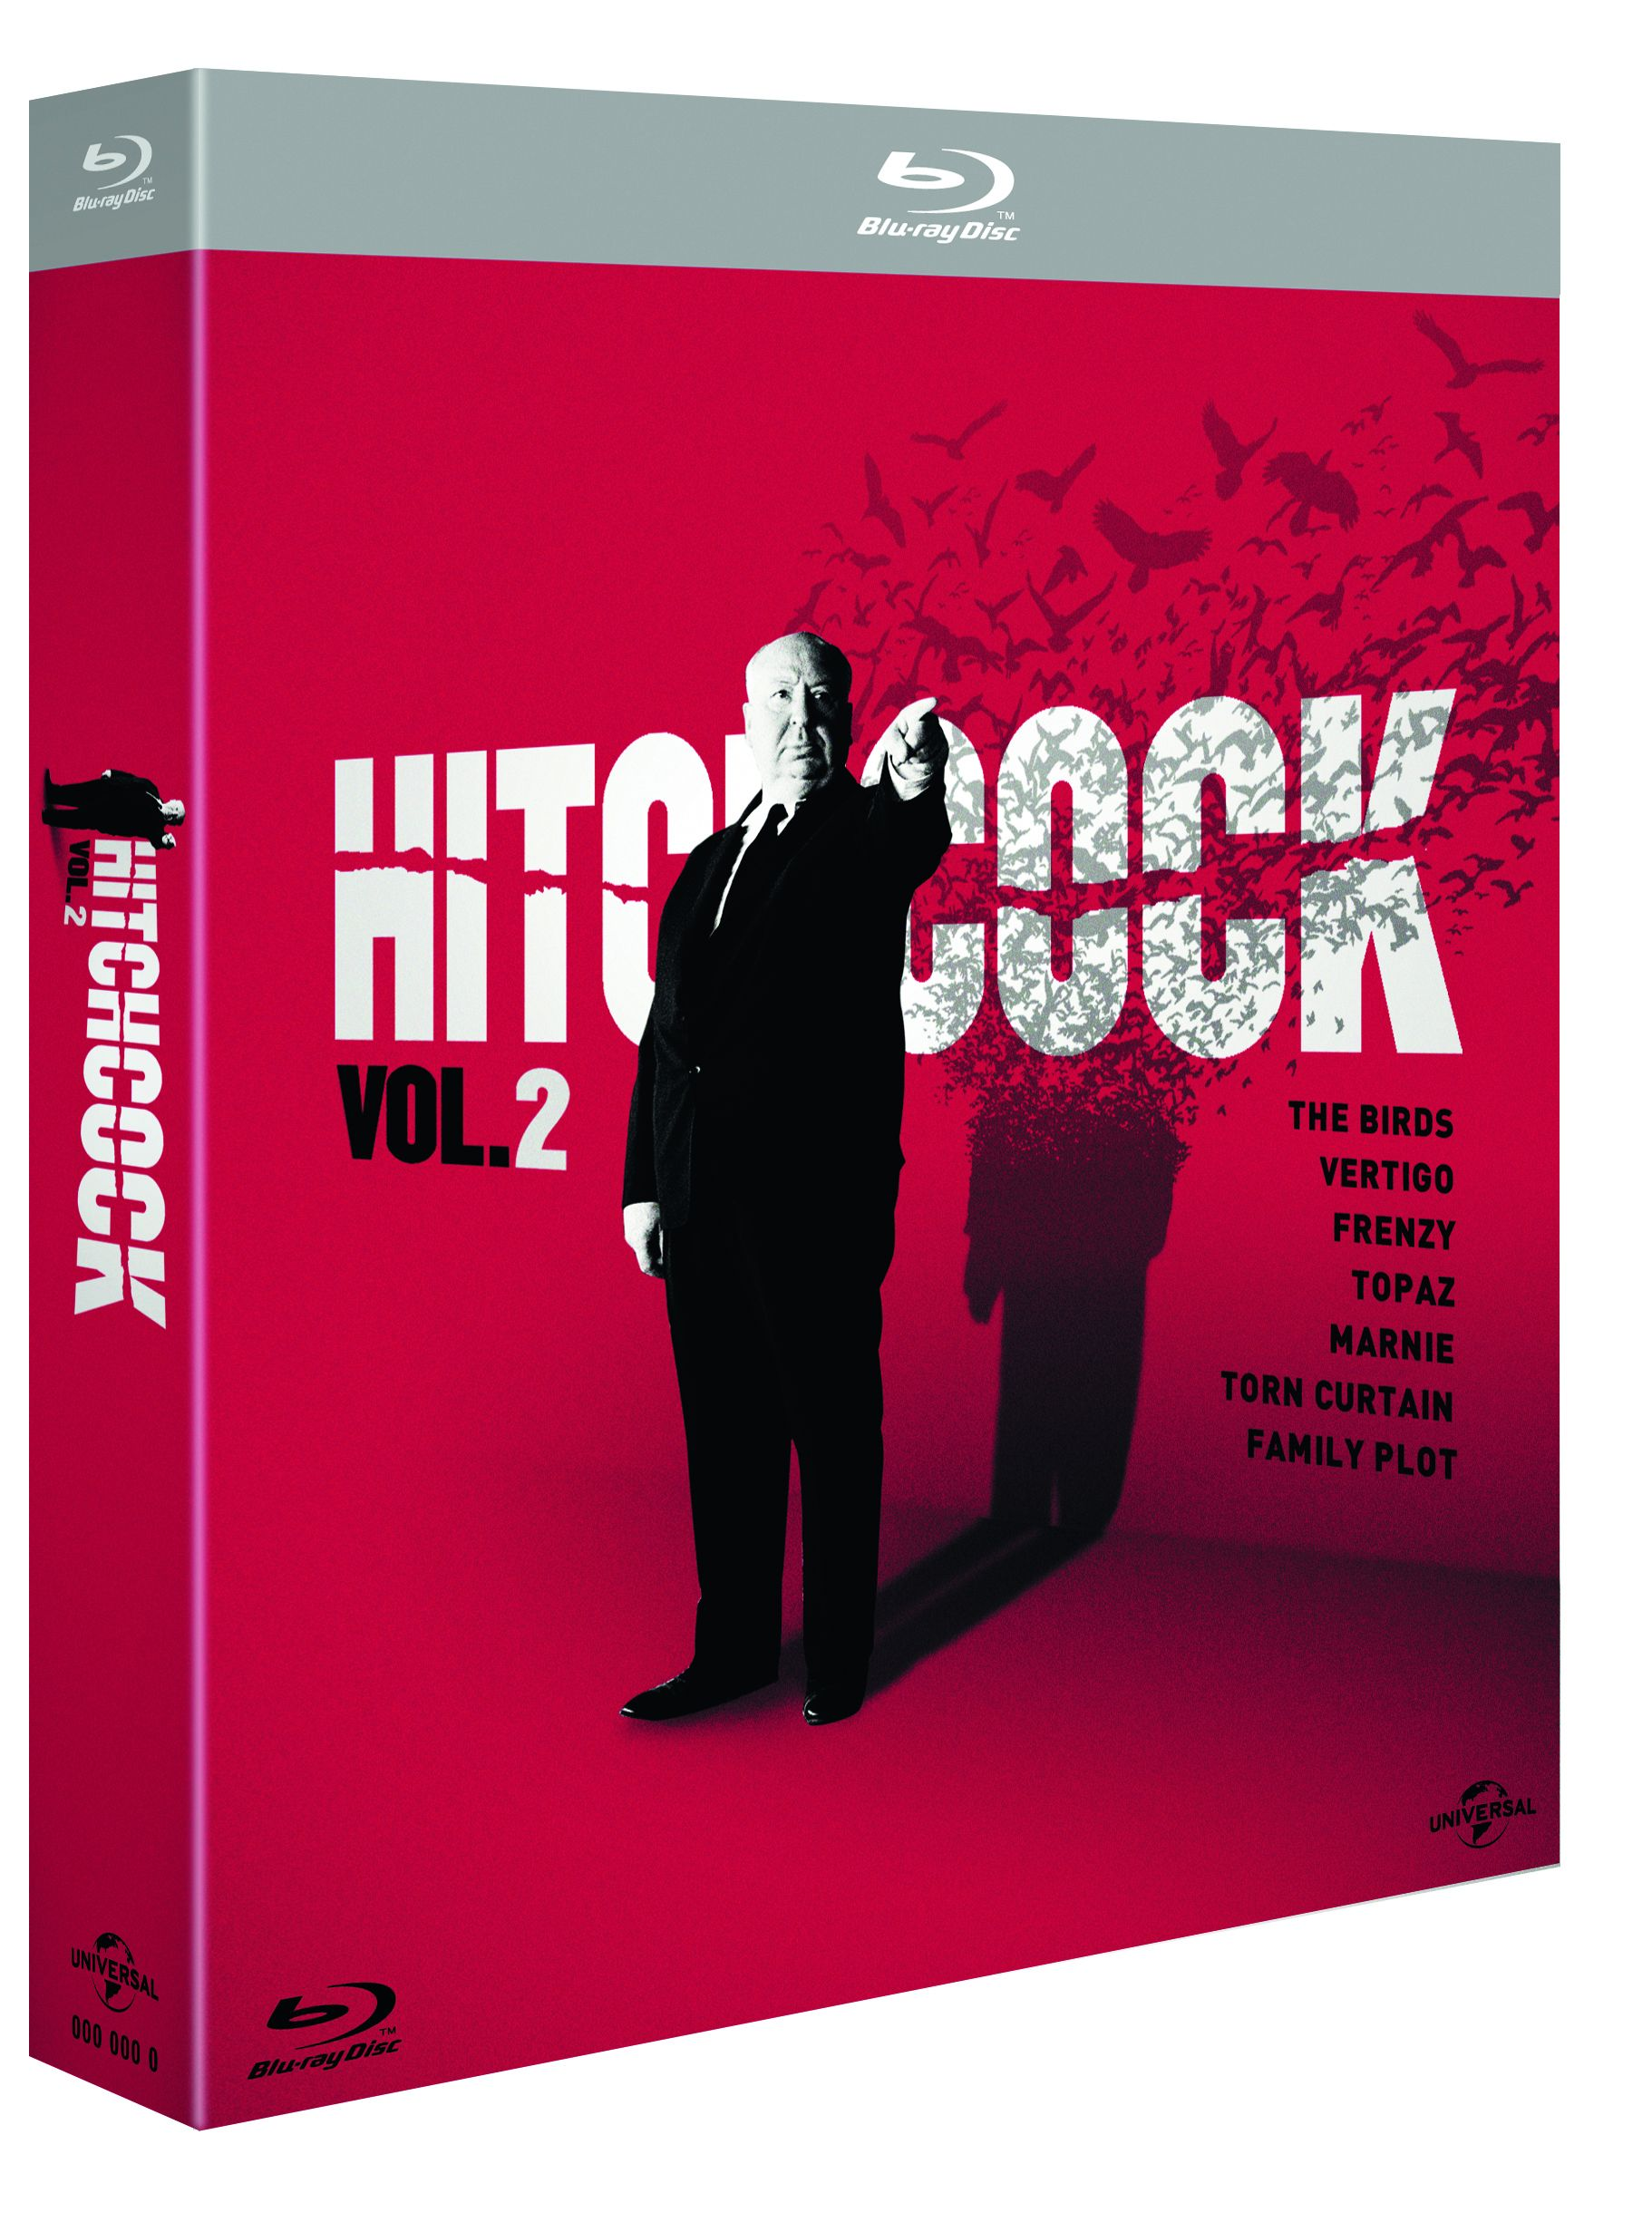 hitchcock boxset blu-ray box 2